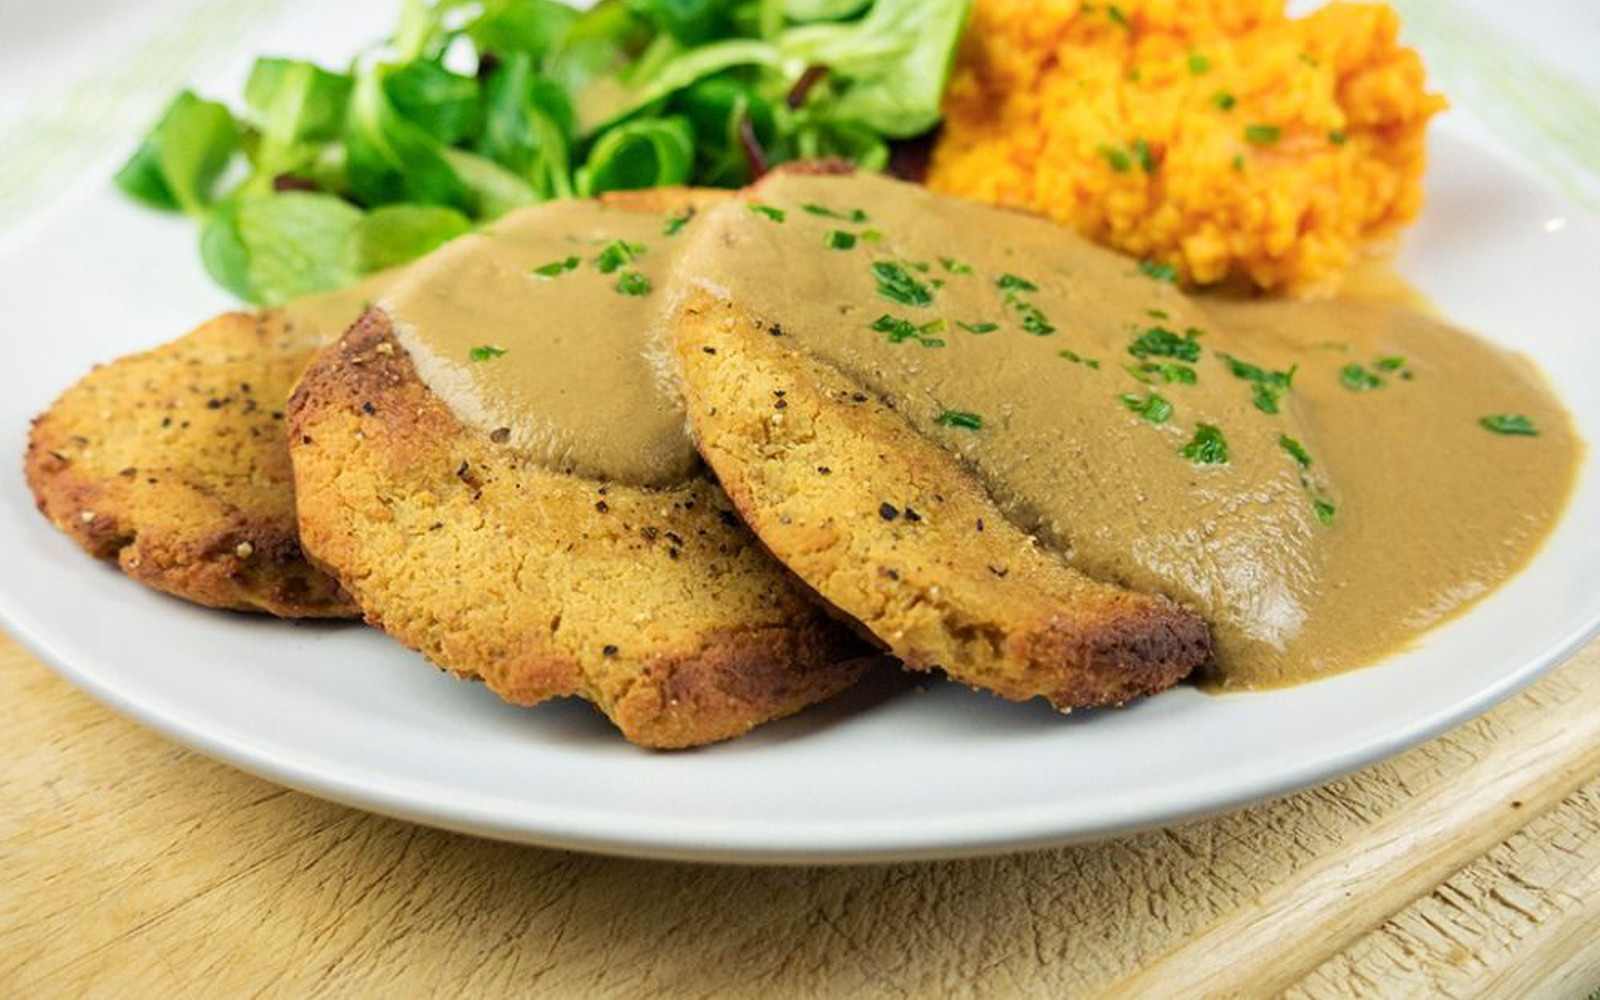 Tofu 'Chicken' Fillets With Mushroom Gravy and Mashed Sweet Potato [Vegan, Gluten-Free]